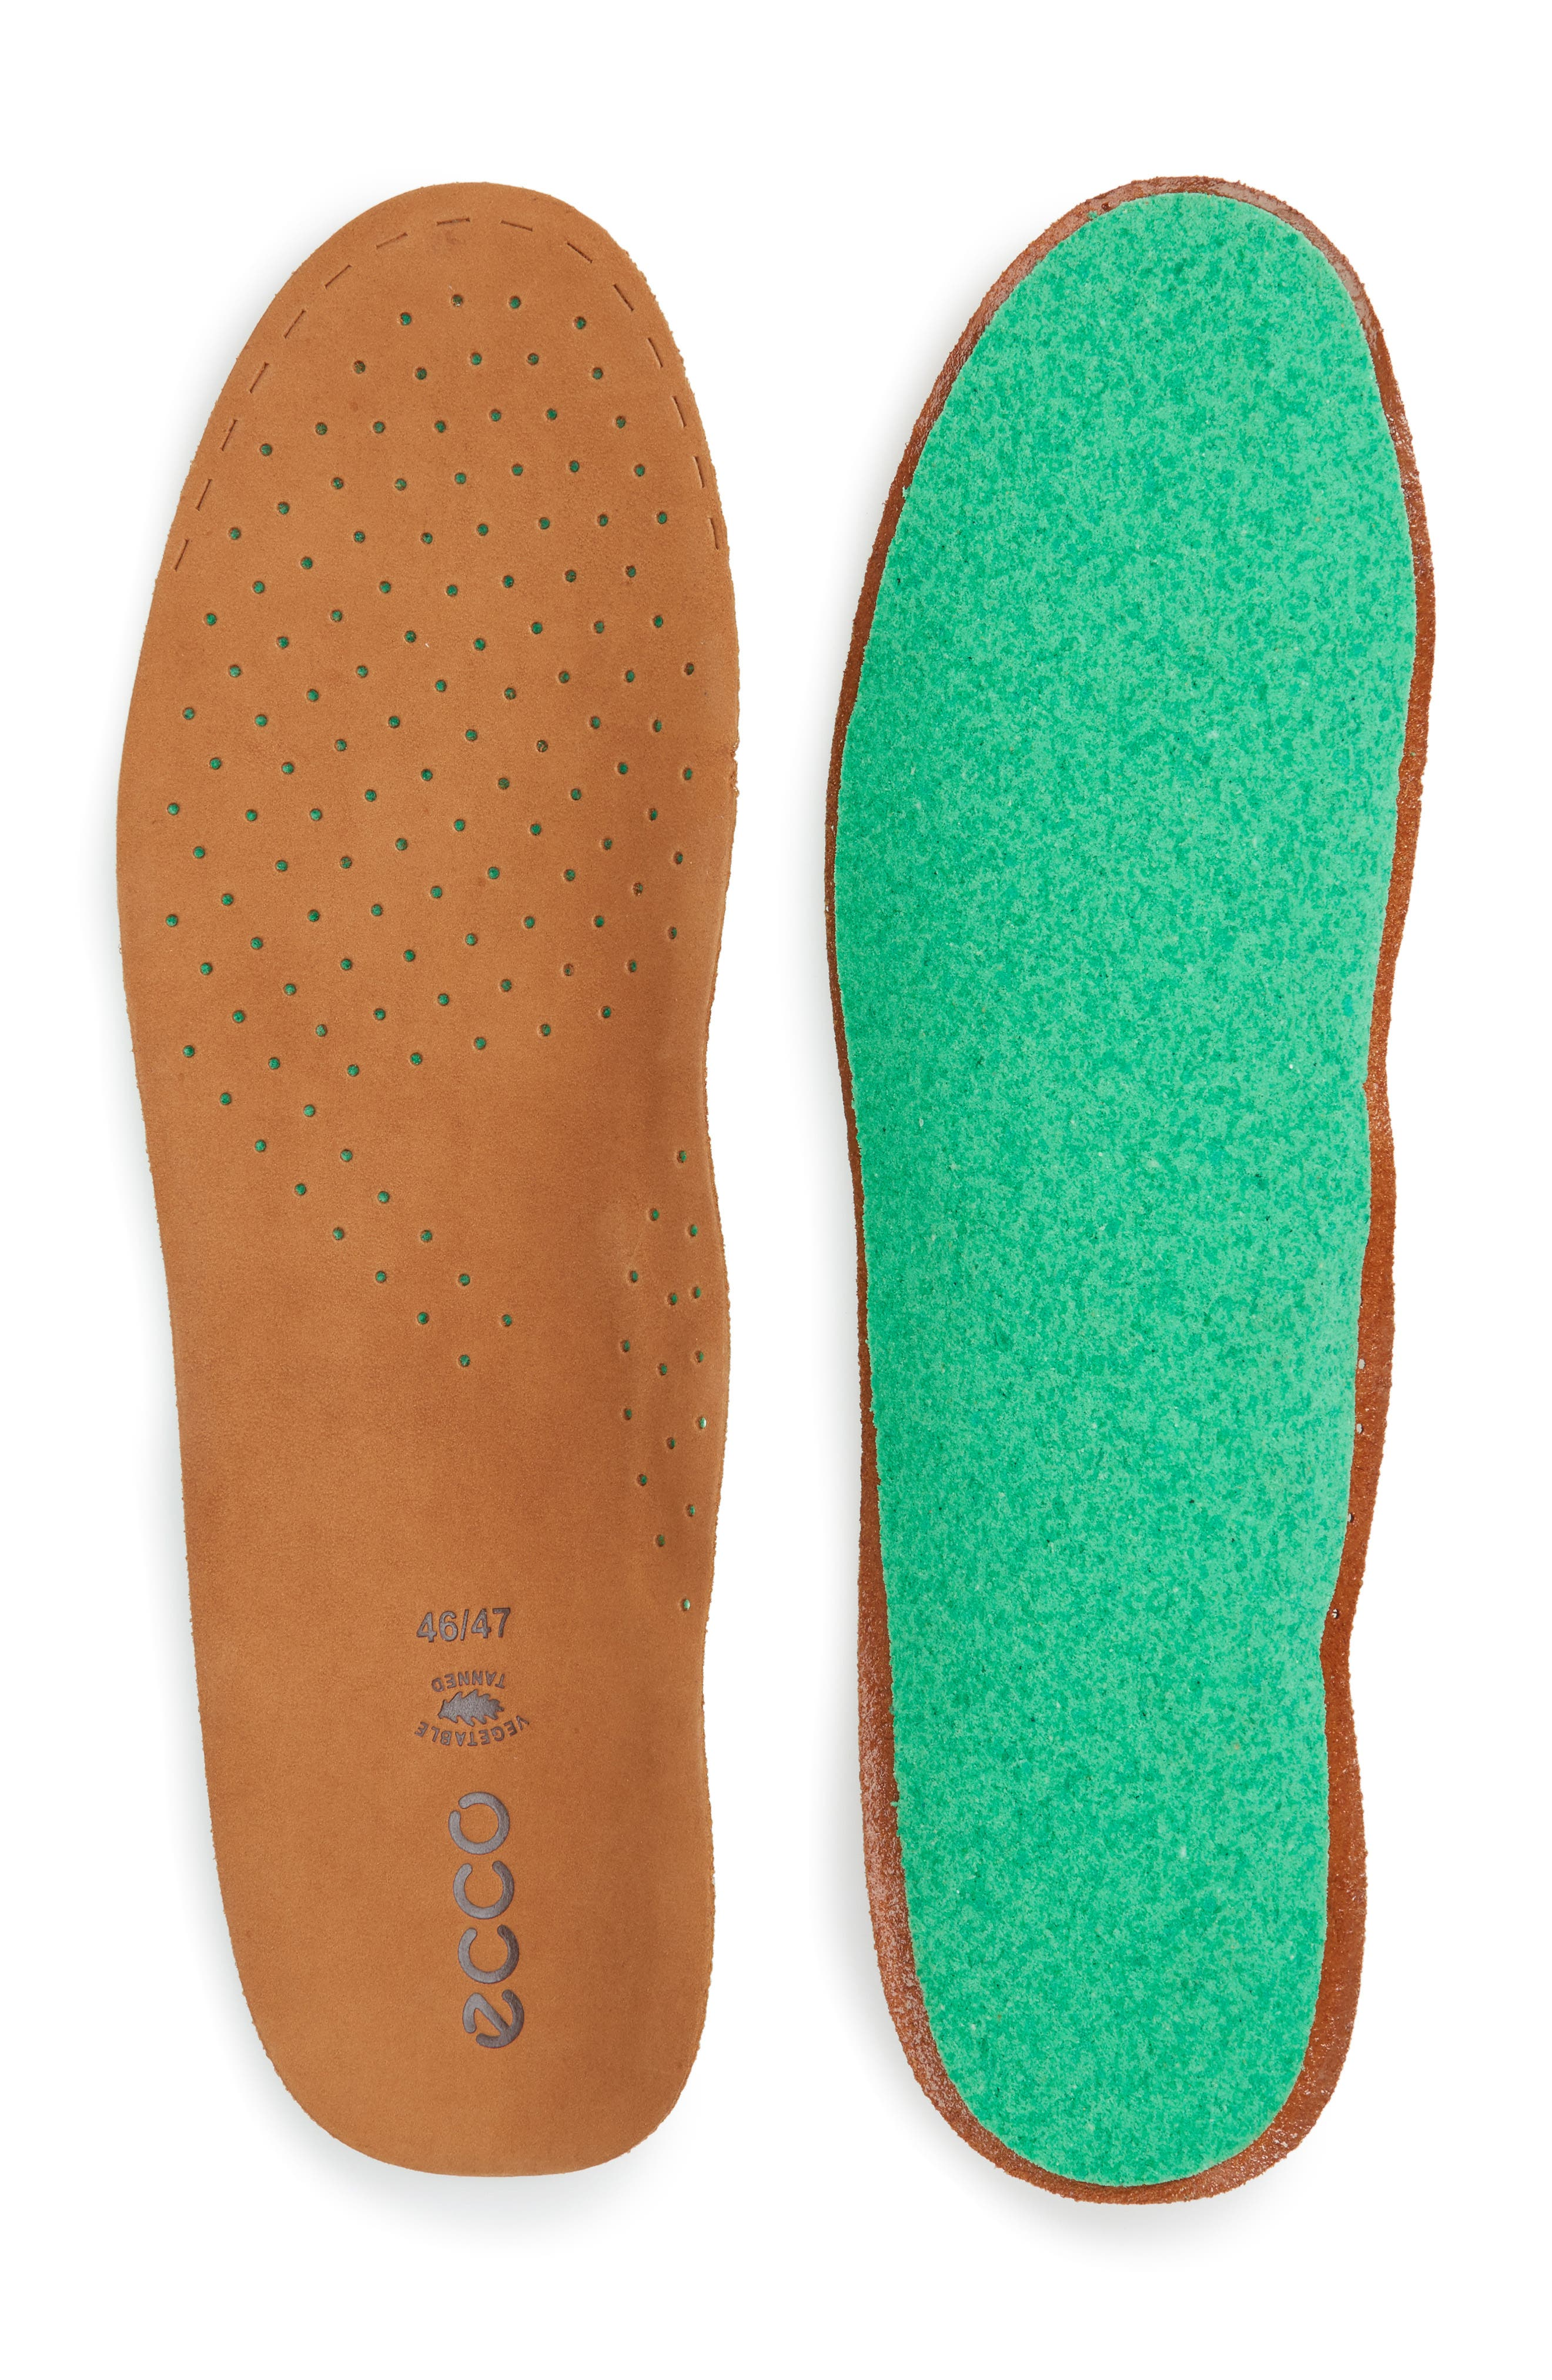 Comfort Everyday Insole,                             Main thumbnail 1, color,                             LION